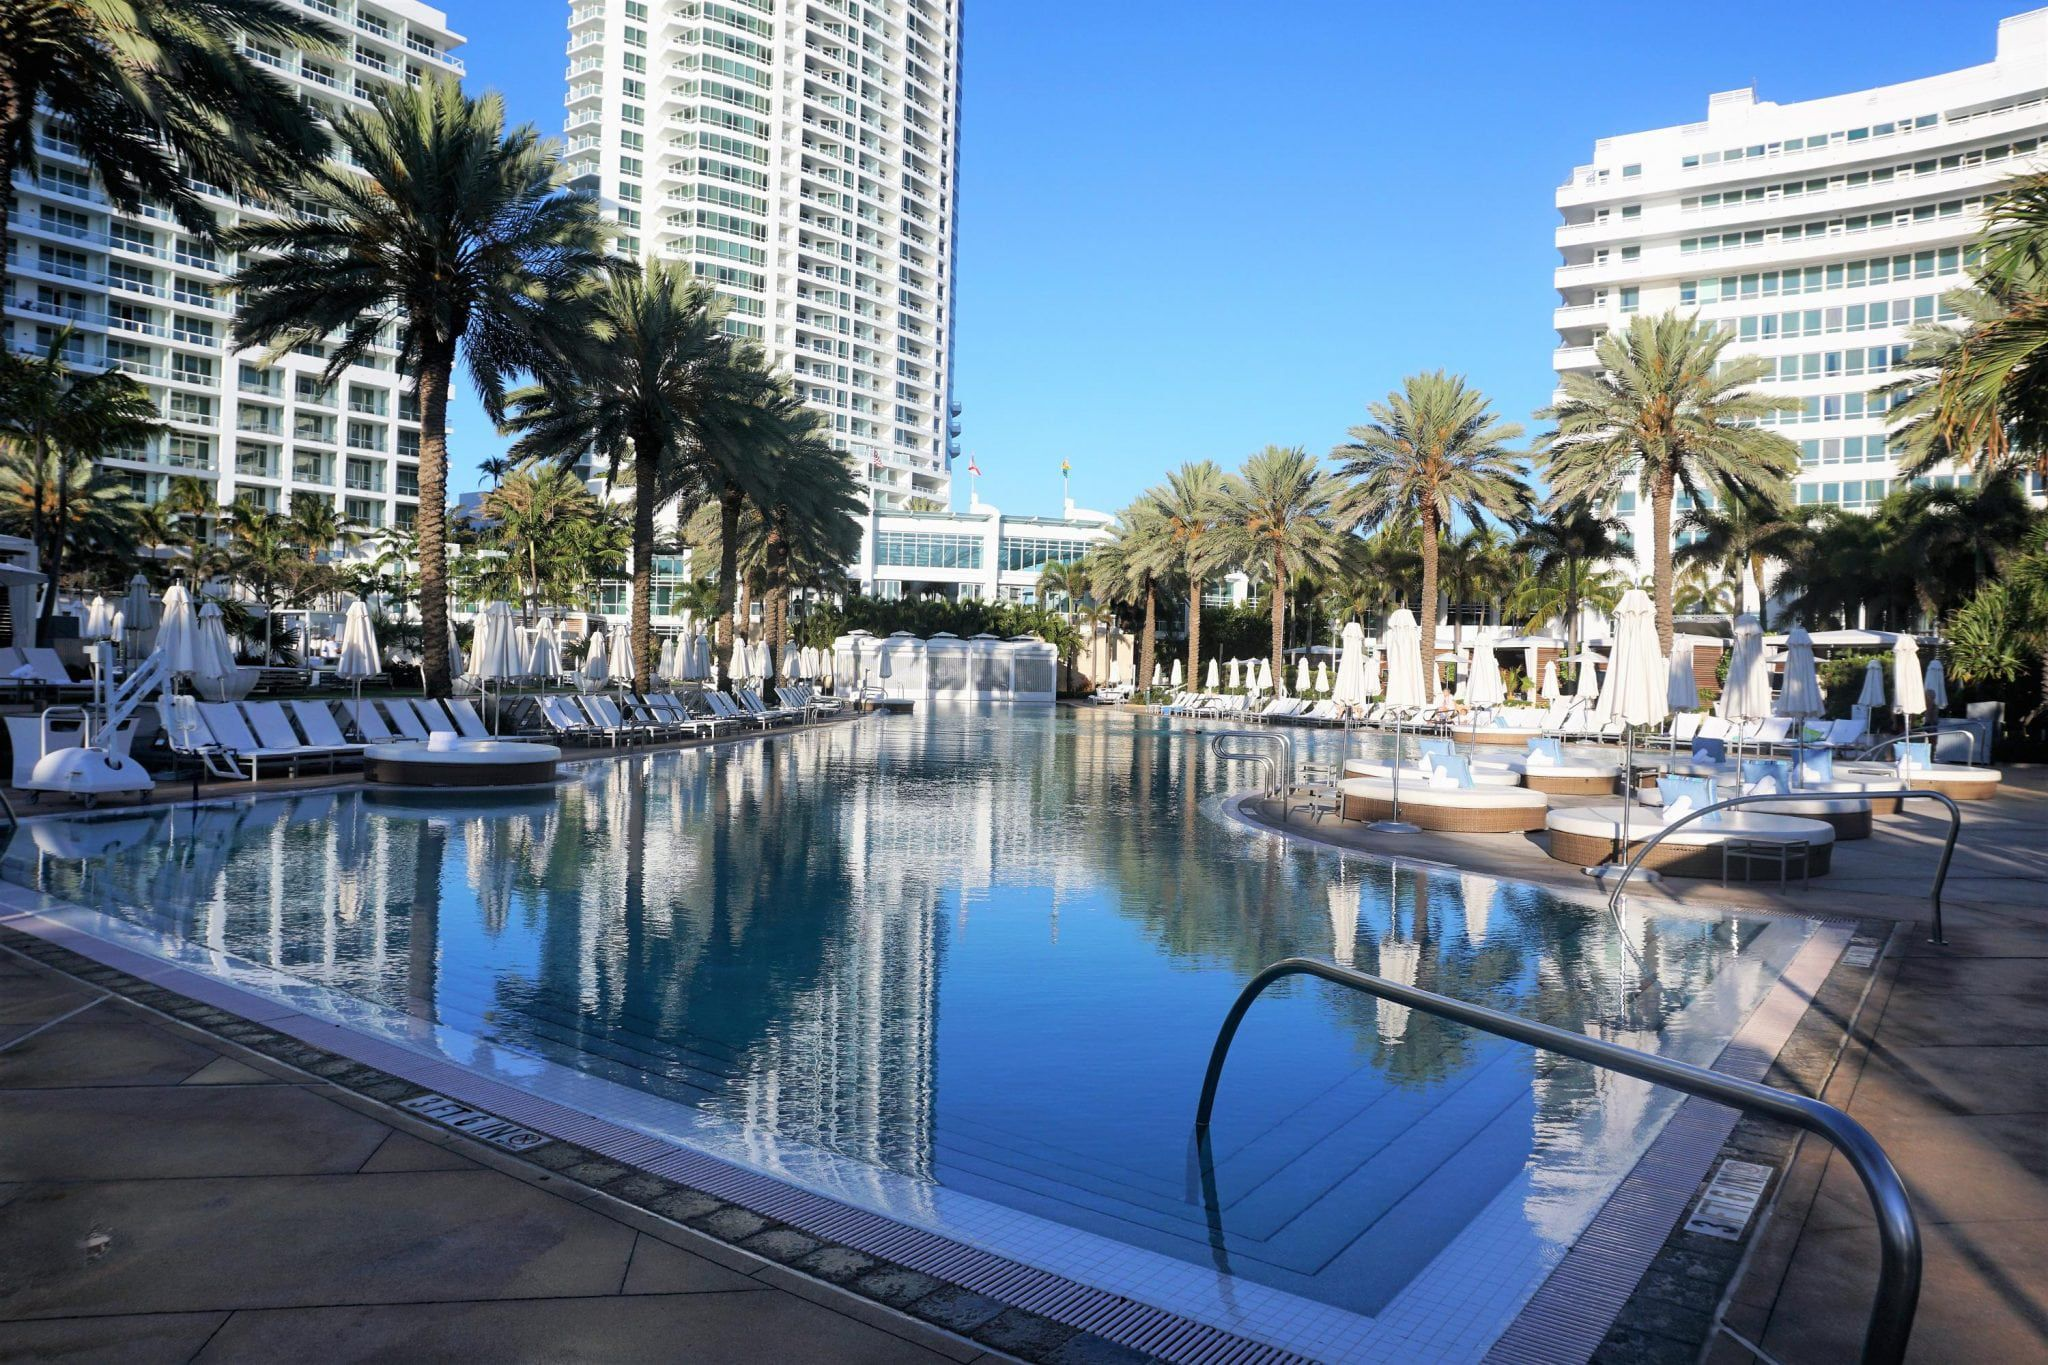 Bow Tie Pool at Fontainebleau Hotel Review